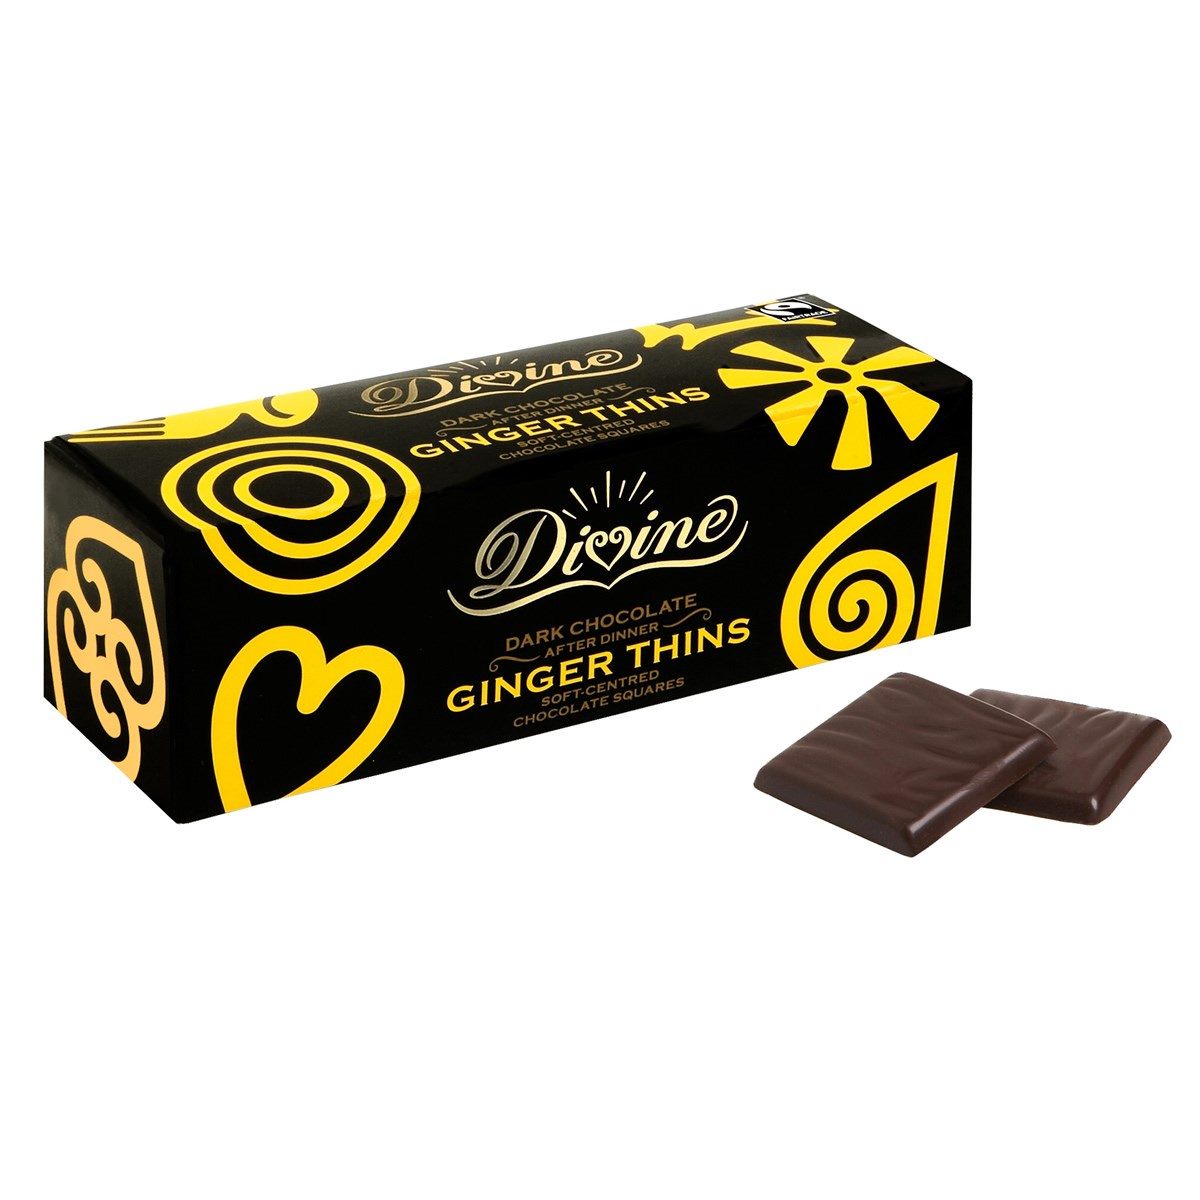 Divine Dark Chocolate After Dinner Ginger Thins